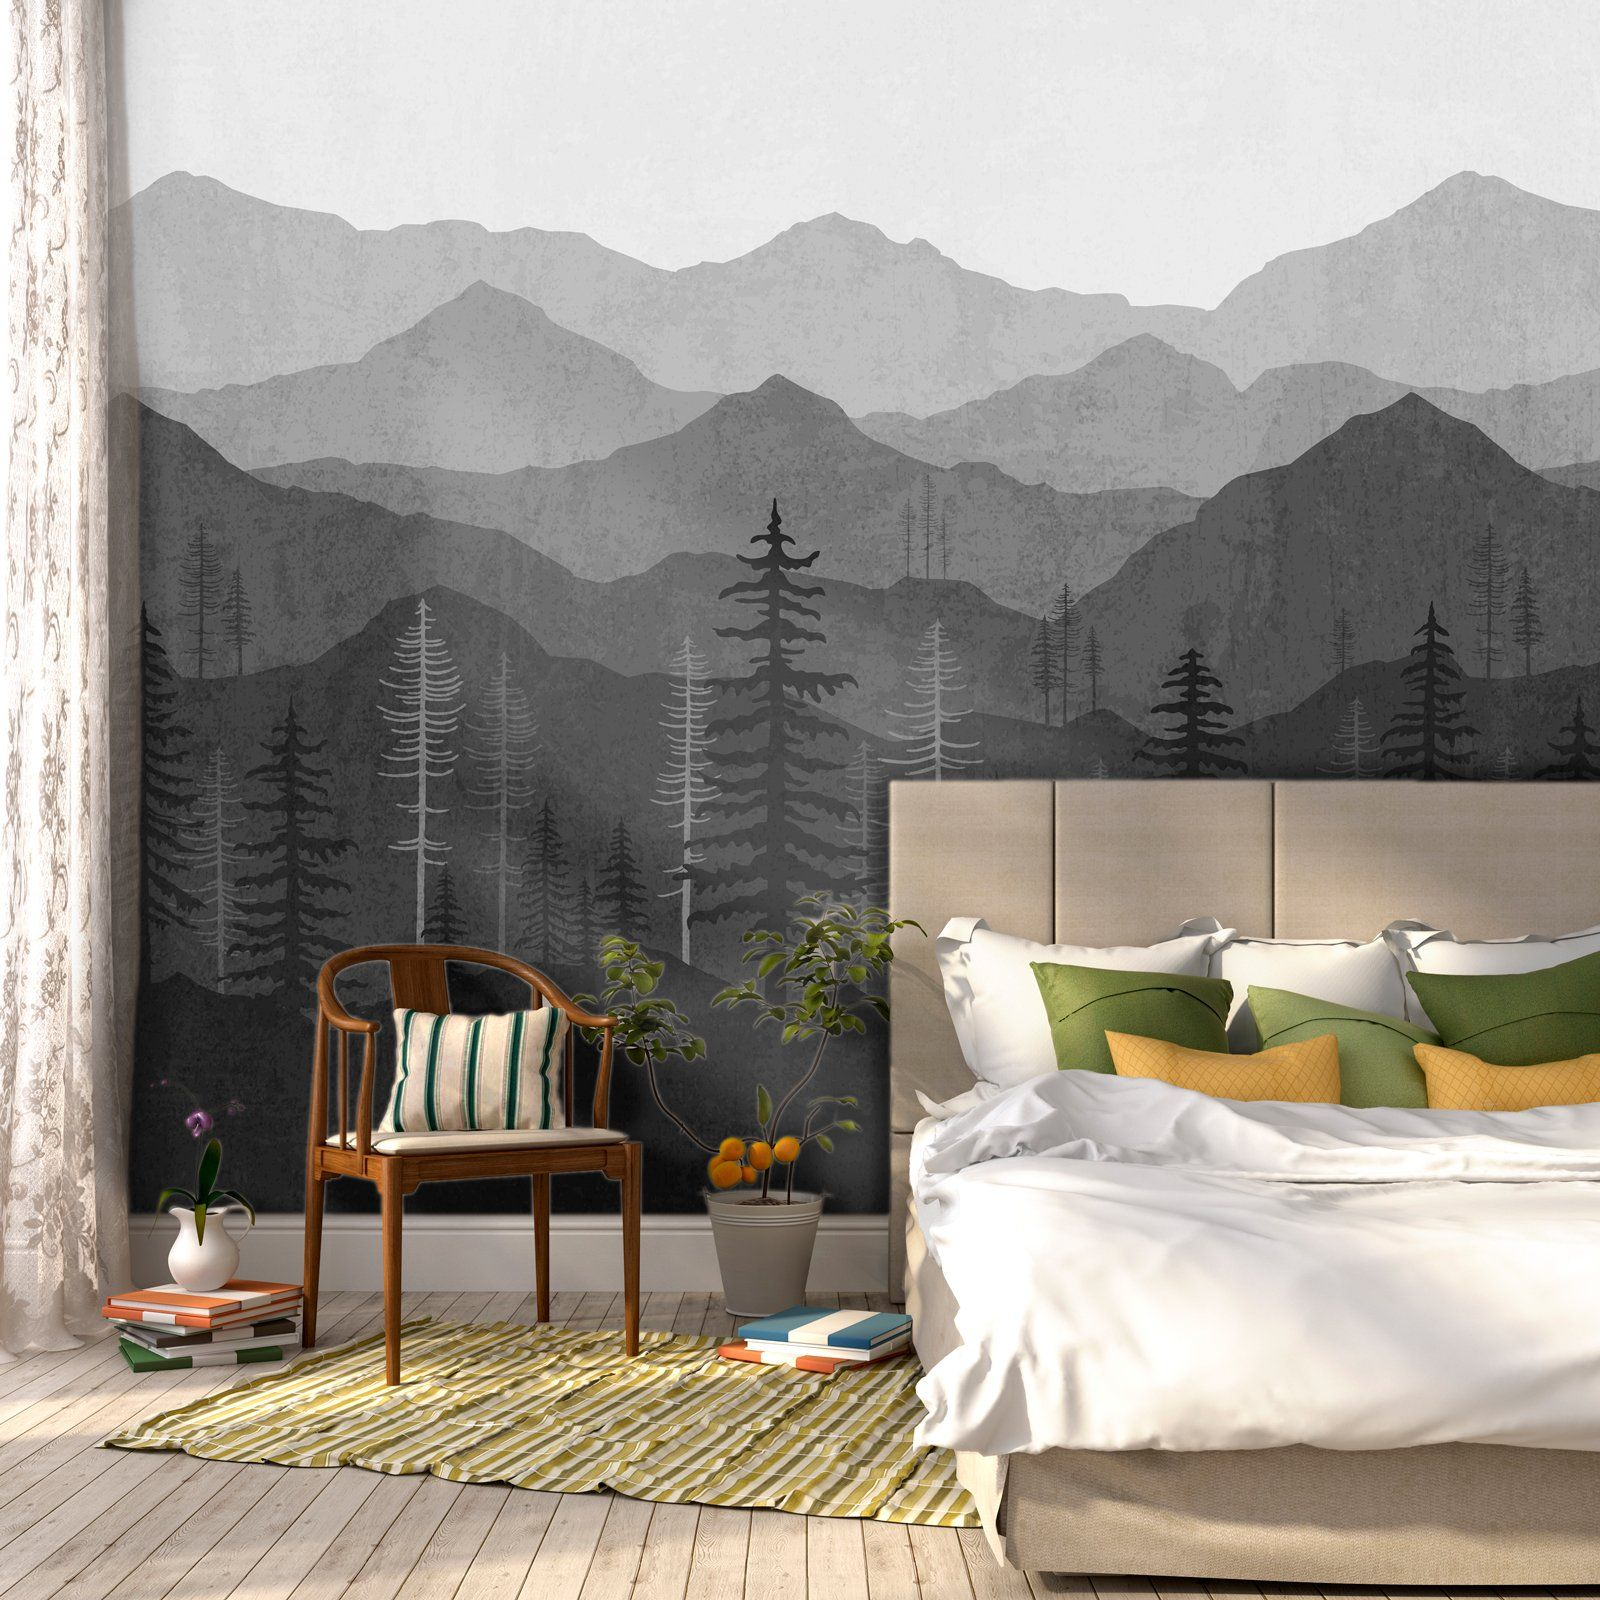 Most Inspiring Wallpaper Mountain Bedroom - 0ca36faa71497e79d7549cd0130c82cc  You Should Have_397777.jpg